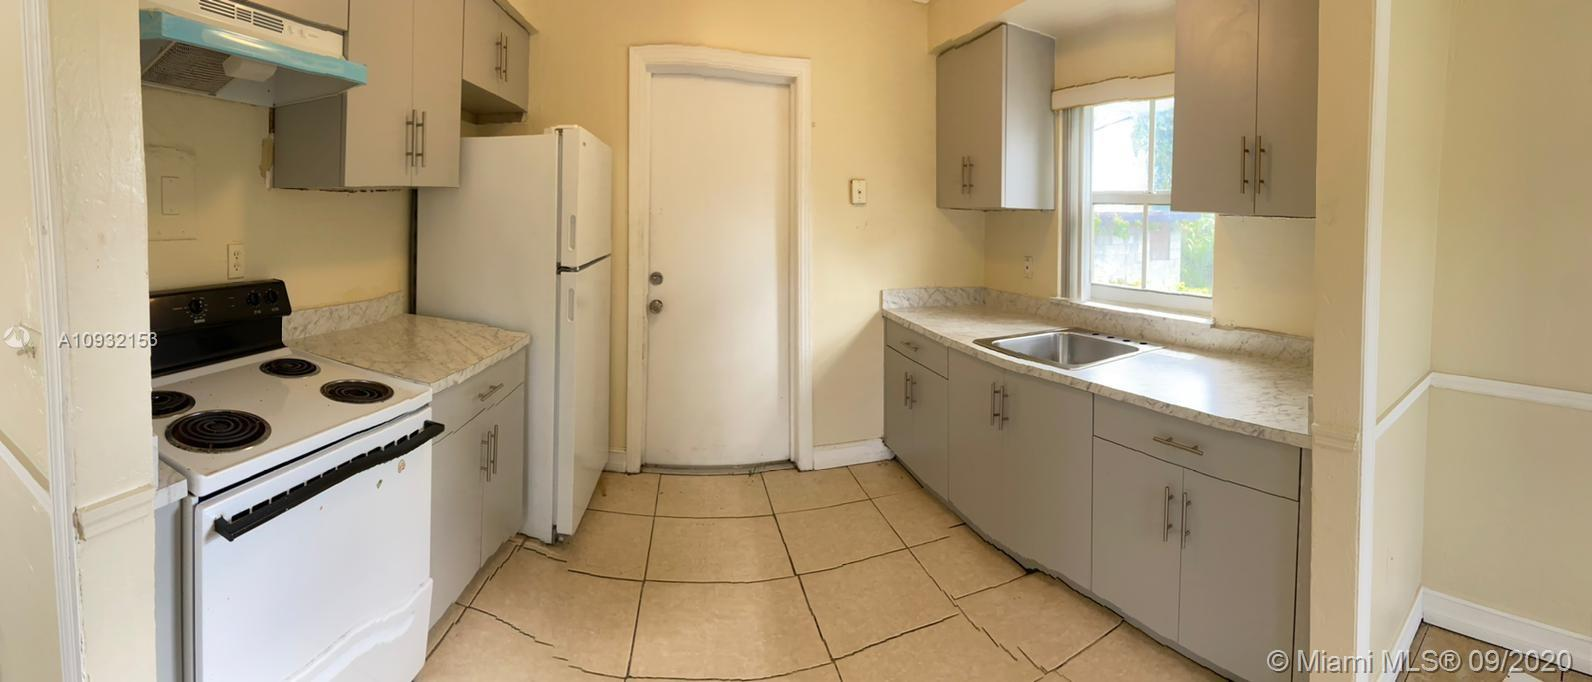 800 NW 55th St, Miami, Florida 33127, 3 Bedrooms Bedrooms, ,2 BathroomsBathrooms,Residential Lease,For Rent,800 NW 55th St,A10932153